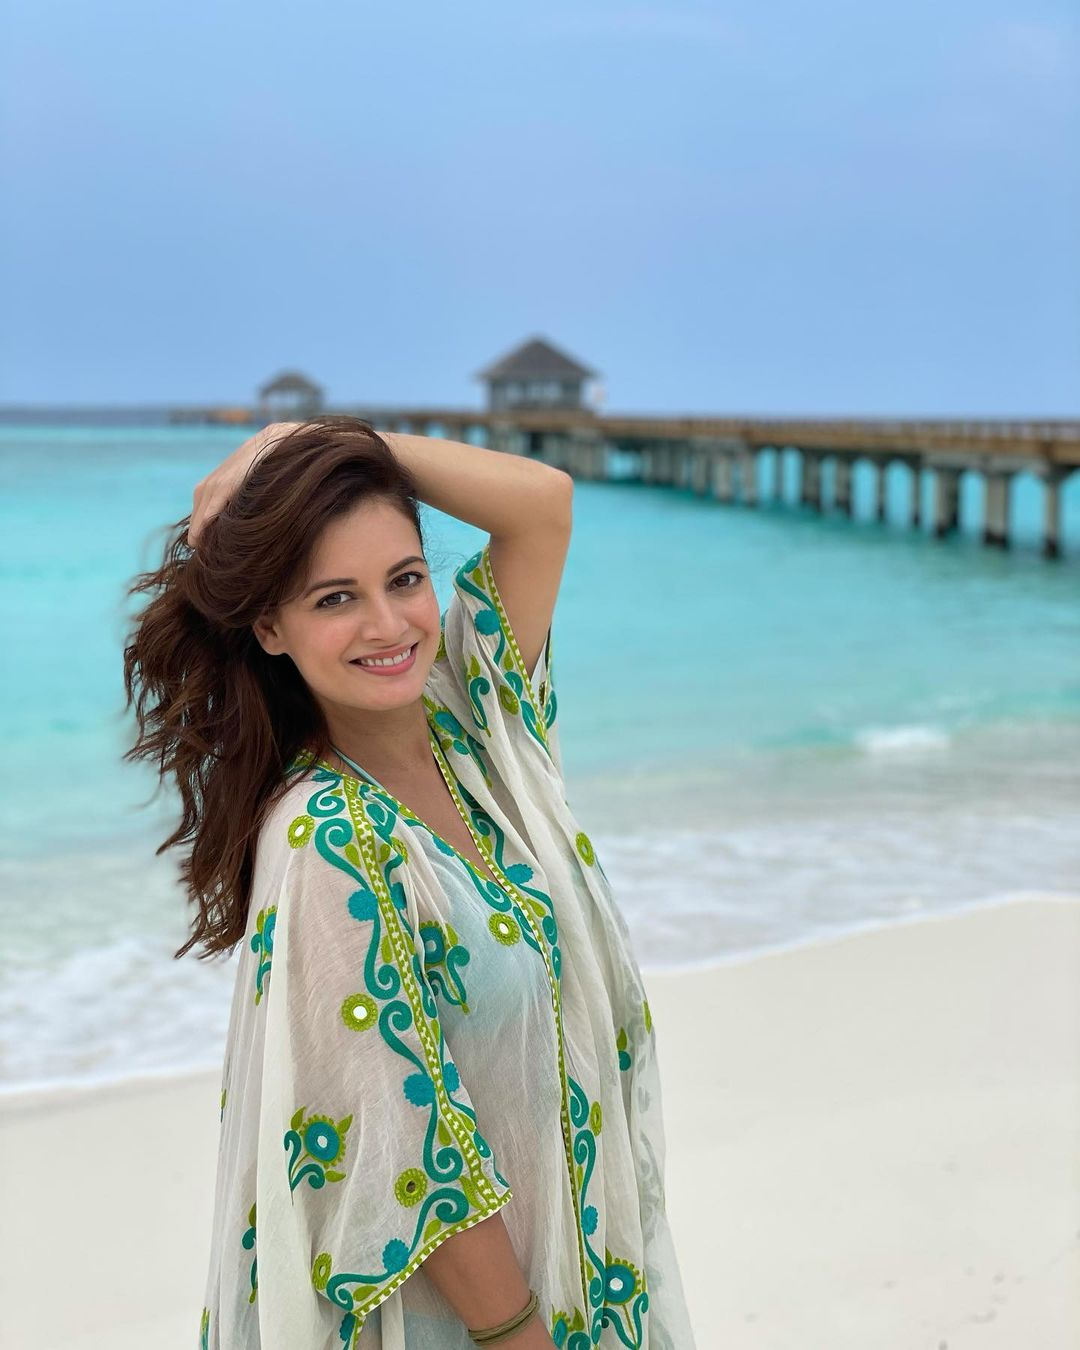 Dia Mirza is a picture of elegance as she is honeymooning in Maldives with husband Vaibhav Rekhi. (Image: Instagram)